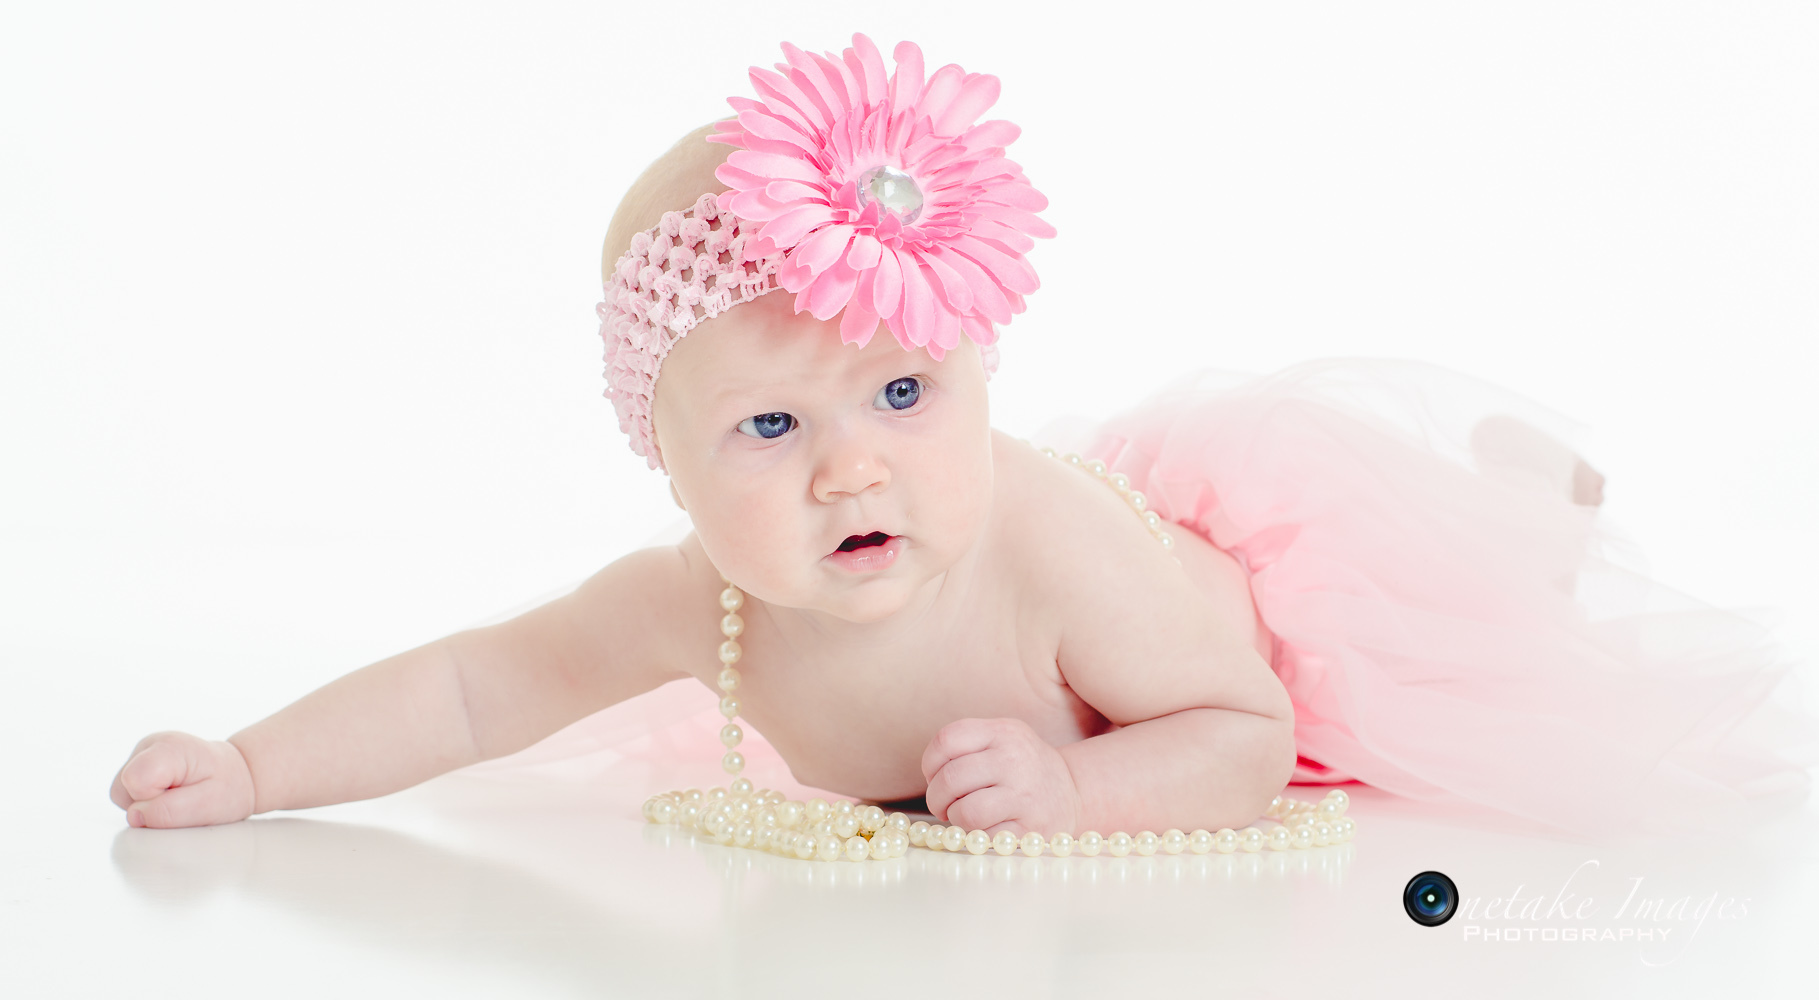 Baby Meadow - Children Photography-5